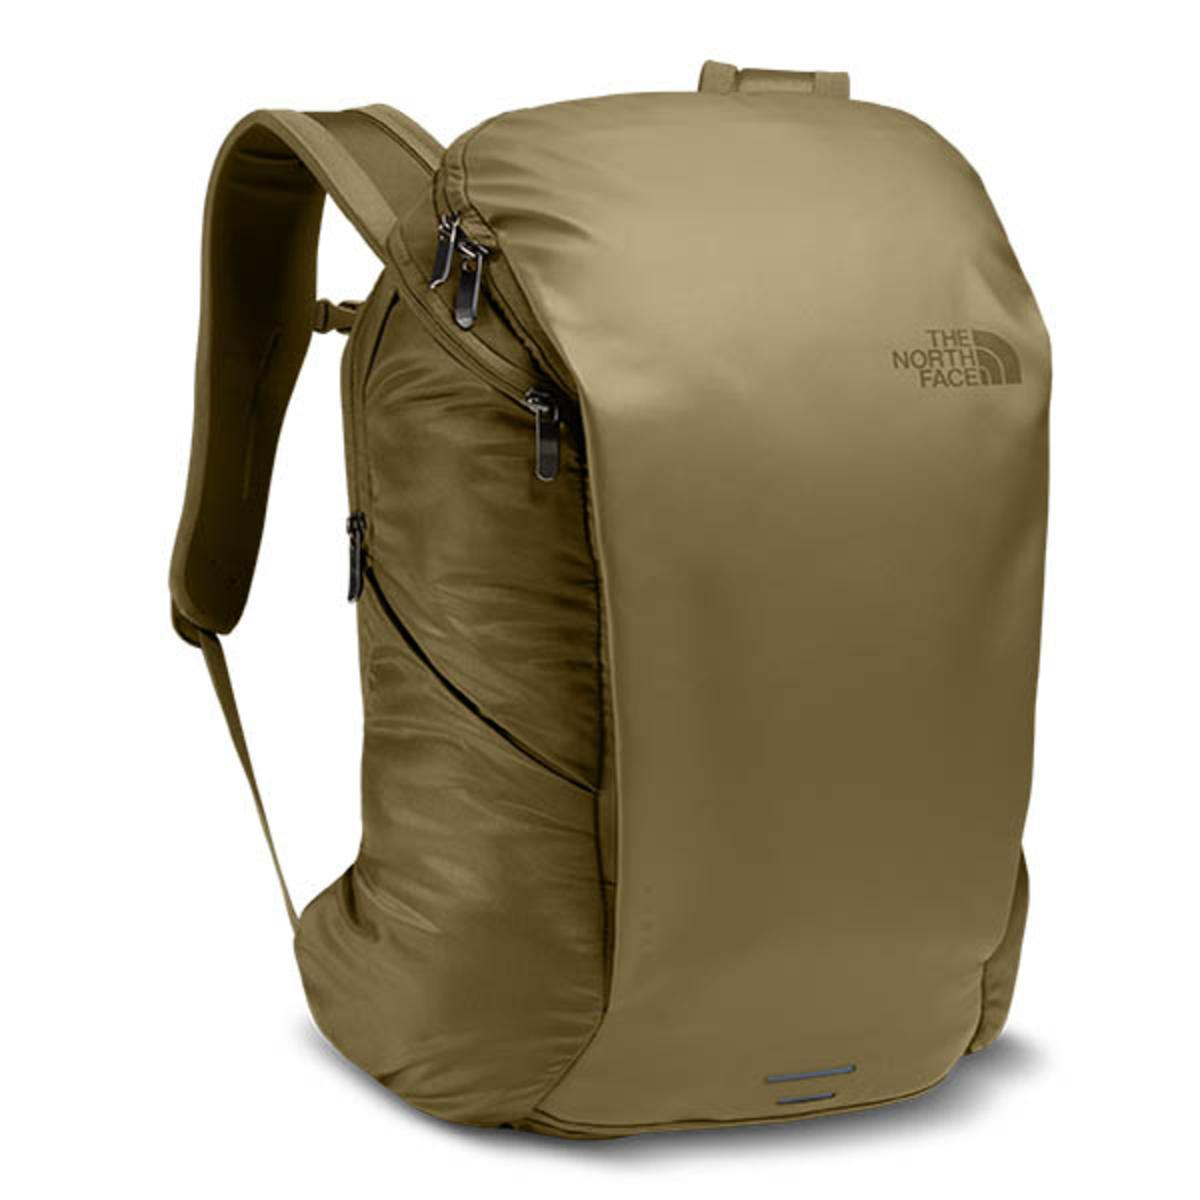 e080c3dfc9fd The North Face Kaban Backpack Bag - The Warming Store